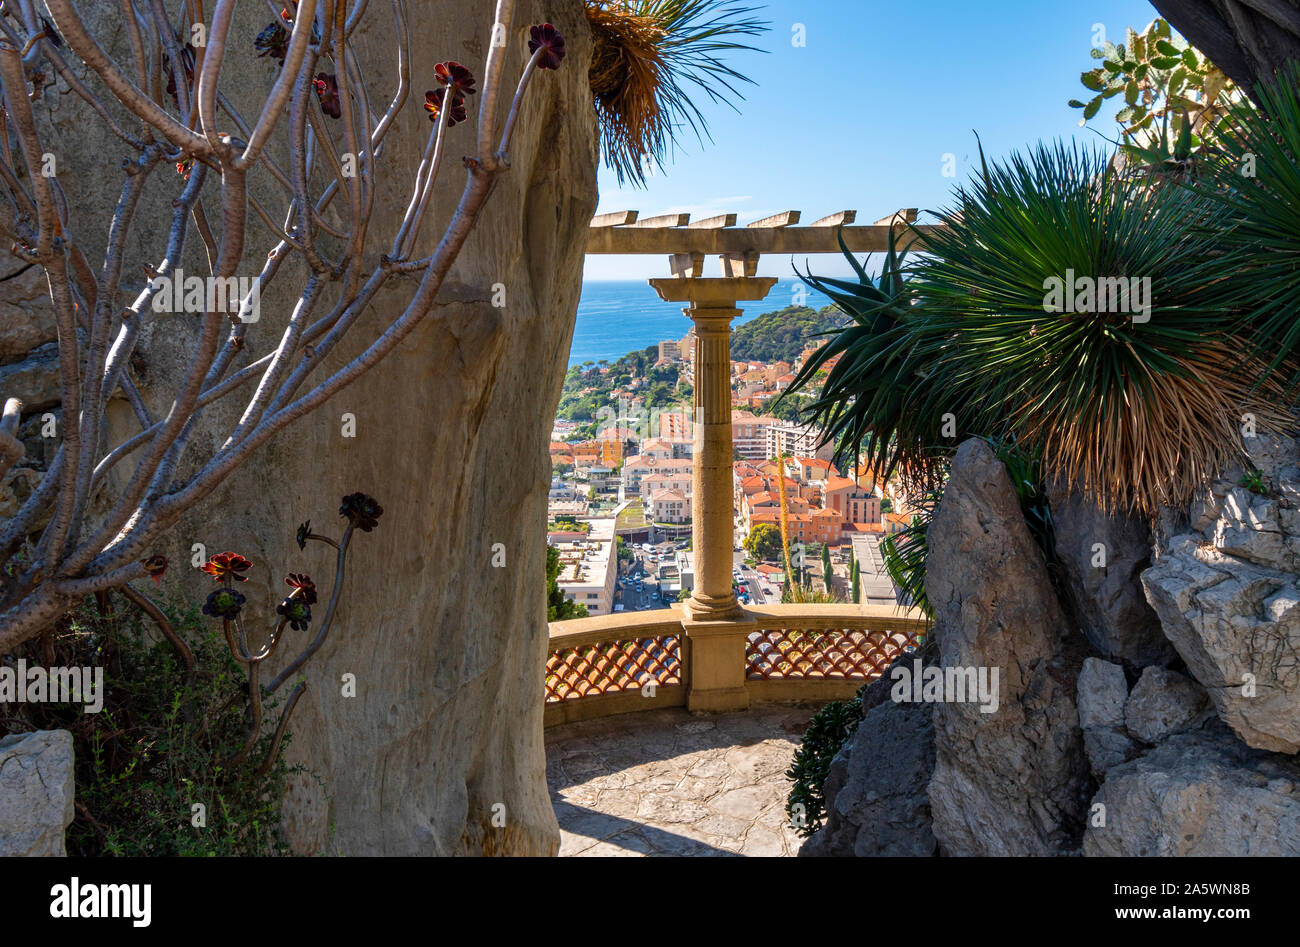 View of the Mediterranean Sea and the city of Monte Carlo, Monaco, between columns from the terrace at the hillside exotic gardens. Stock Photo